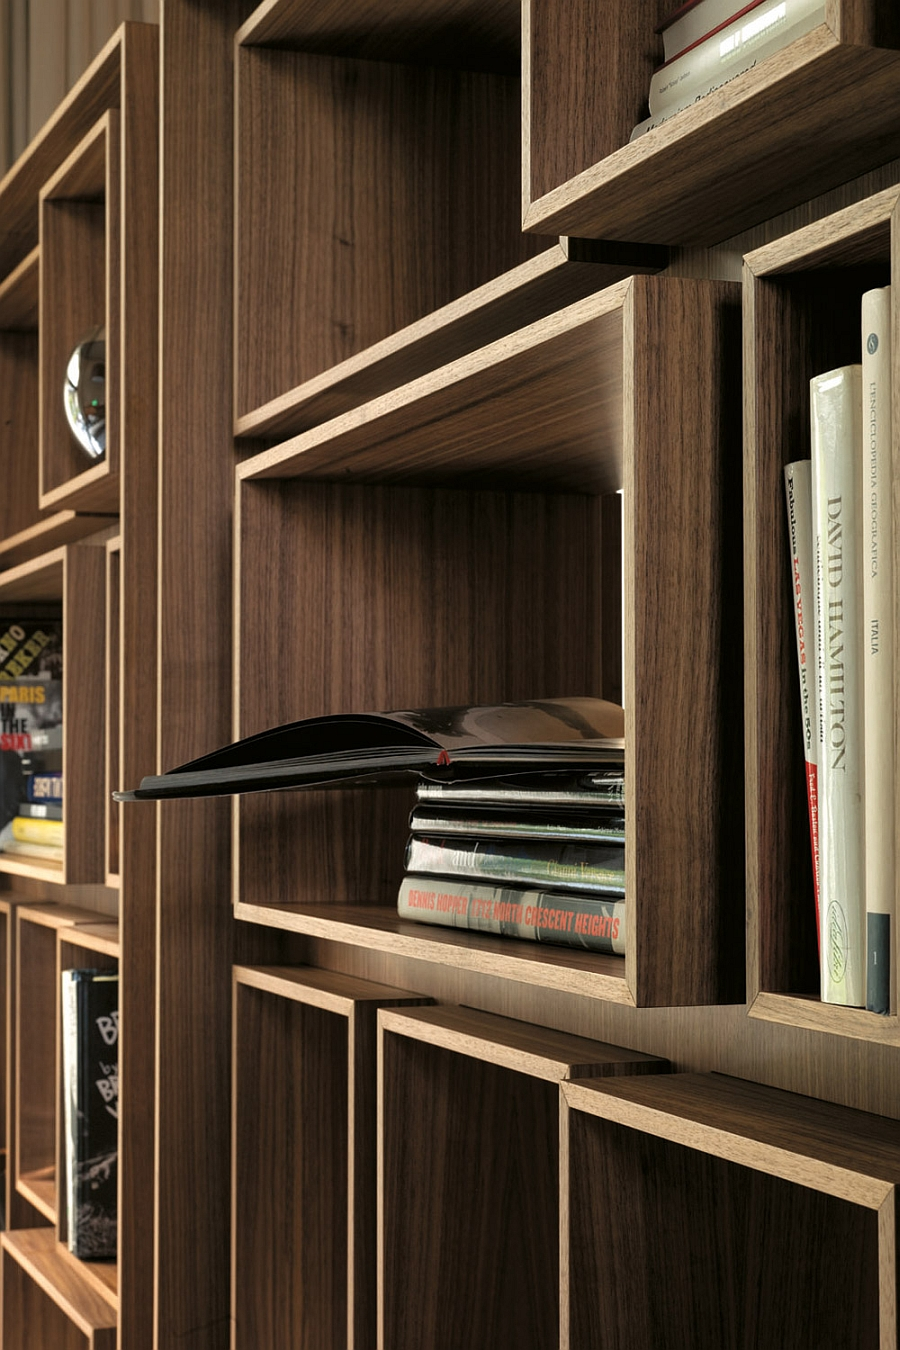 Gorgeous use of wood to shape the stylish bookshelf